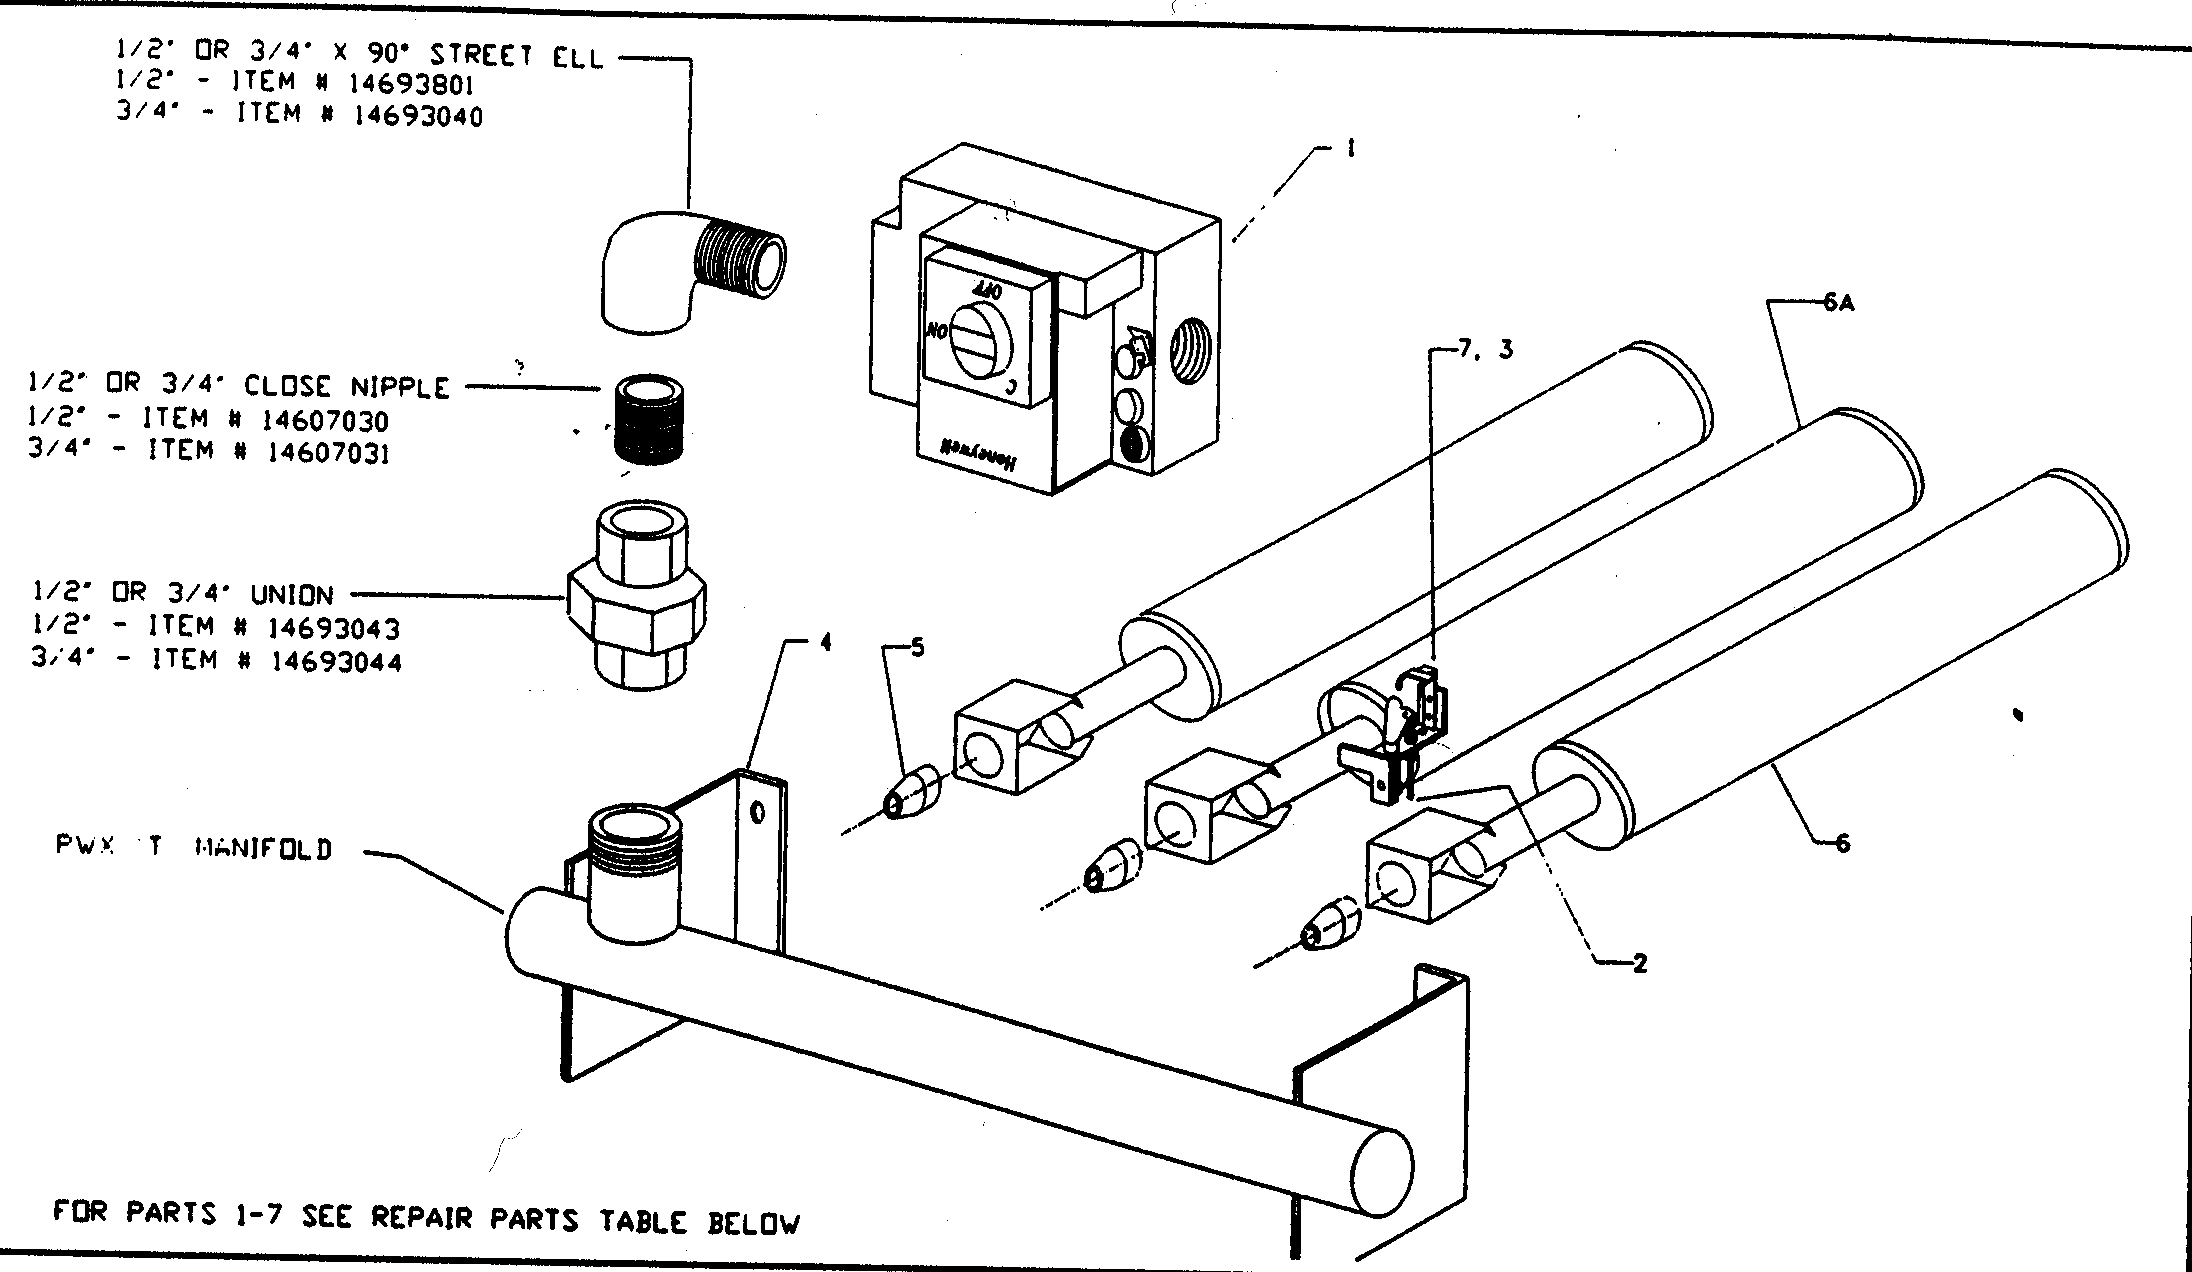 [DIAGRAM] Water Heater Piping Schematic Diagram FULL